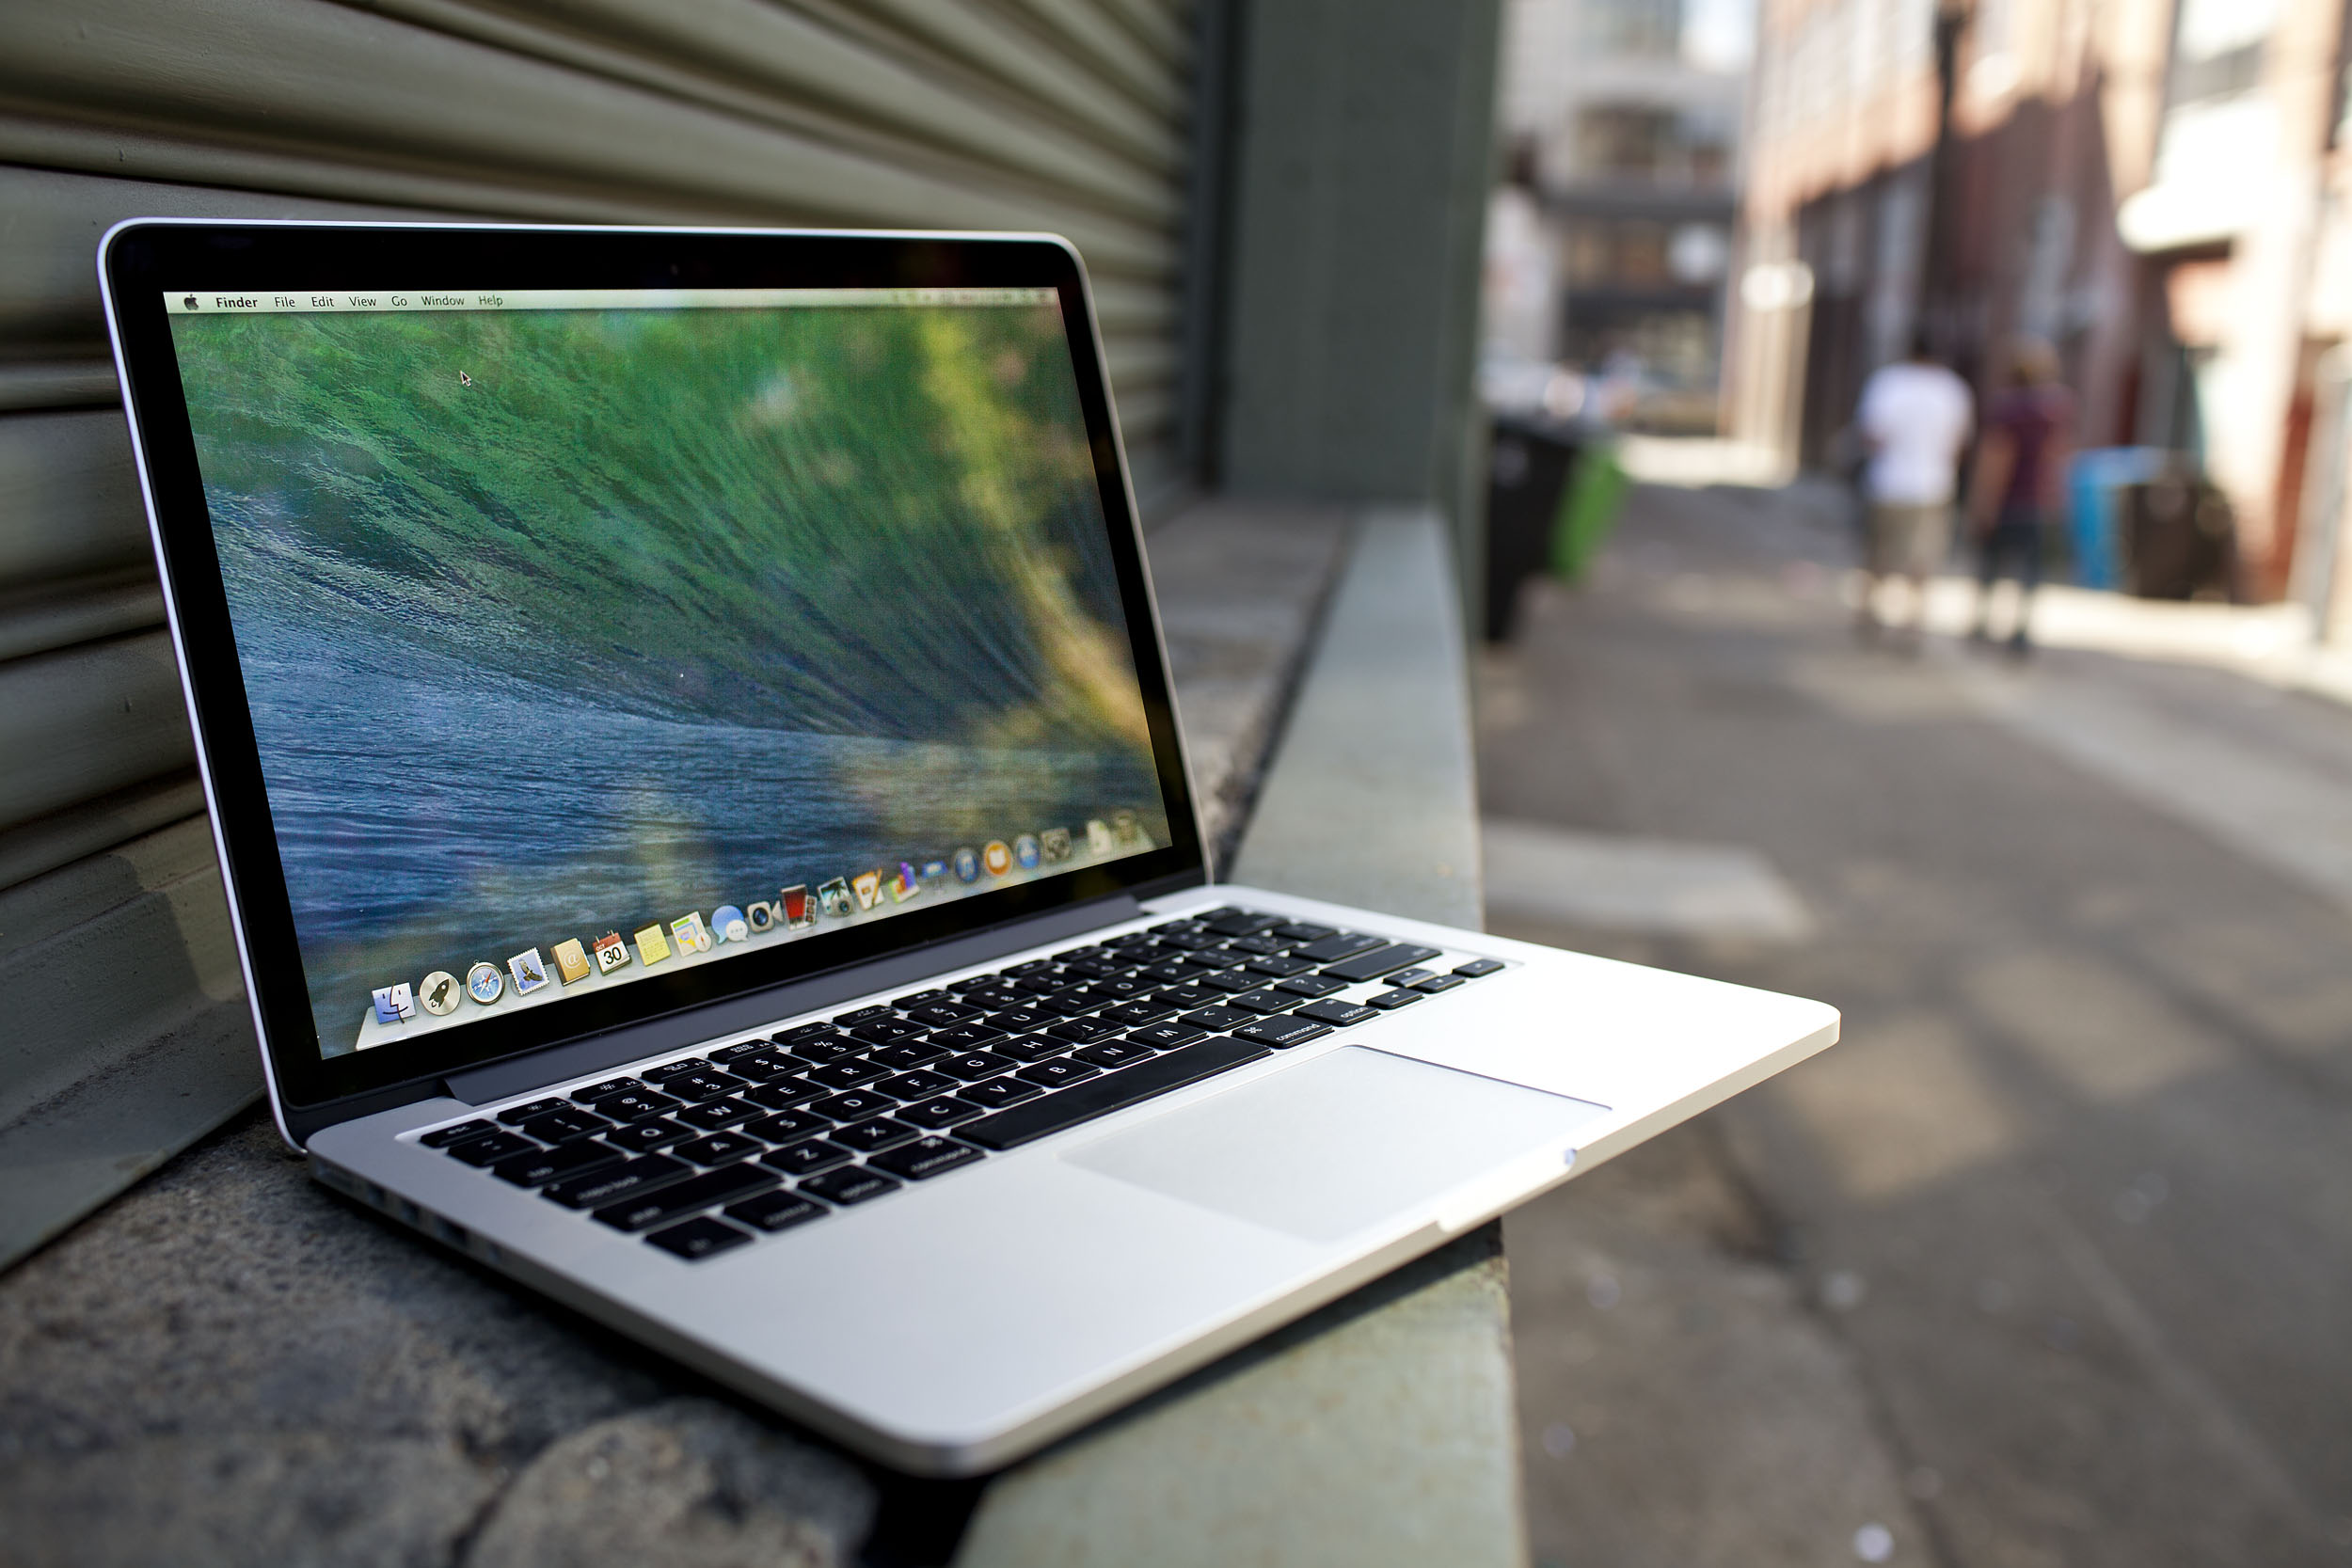 Macbook Pro Retina 15inch. Photo: Josh Valcarcel